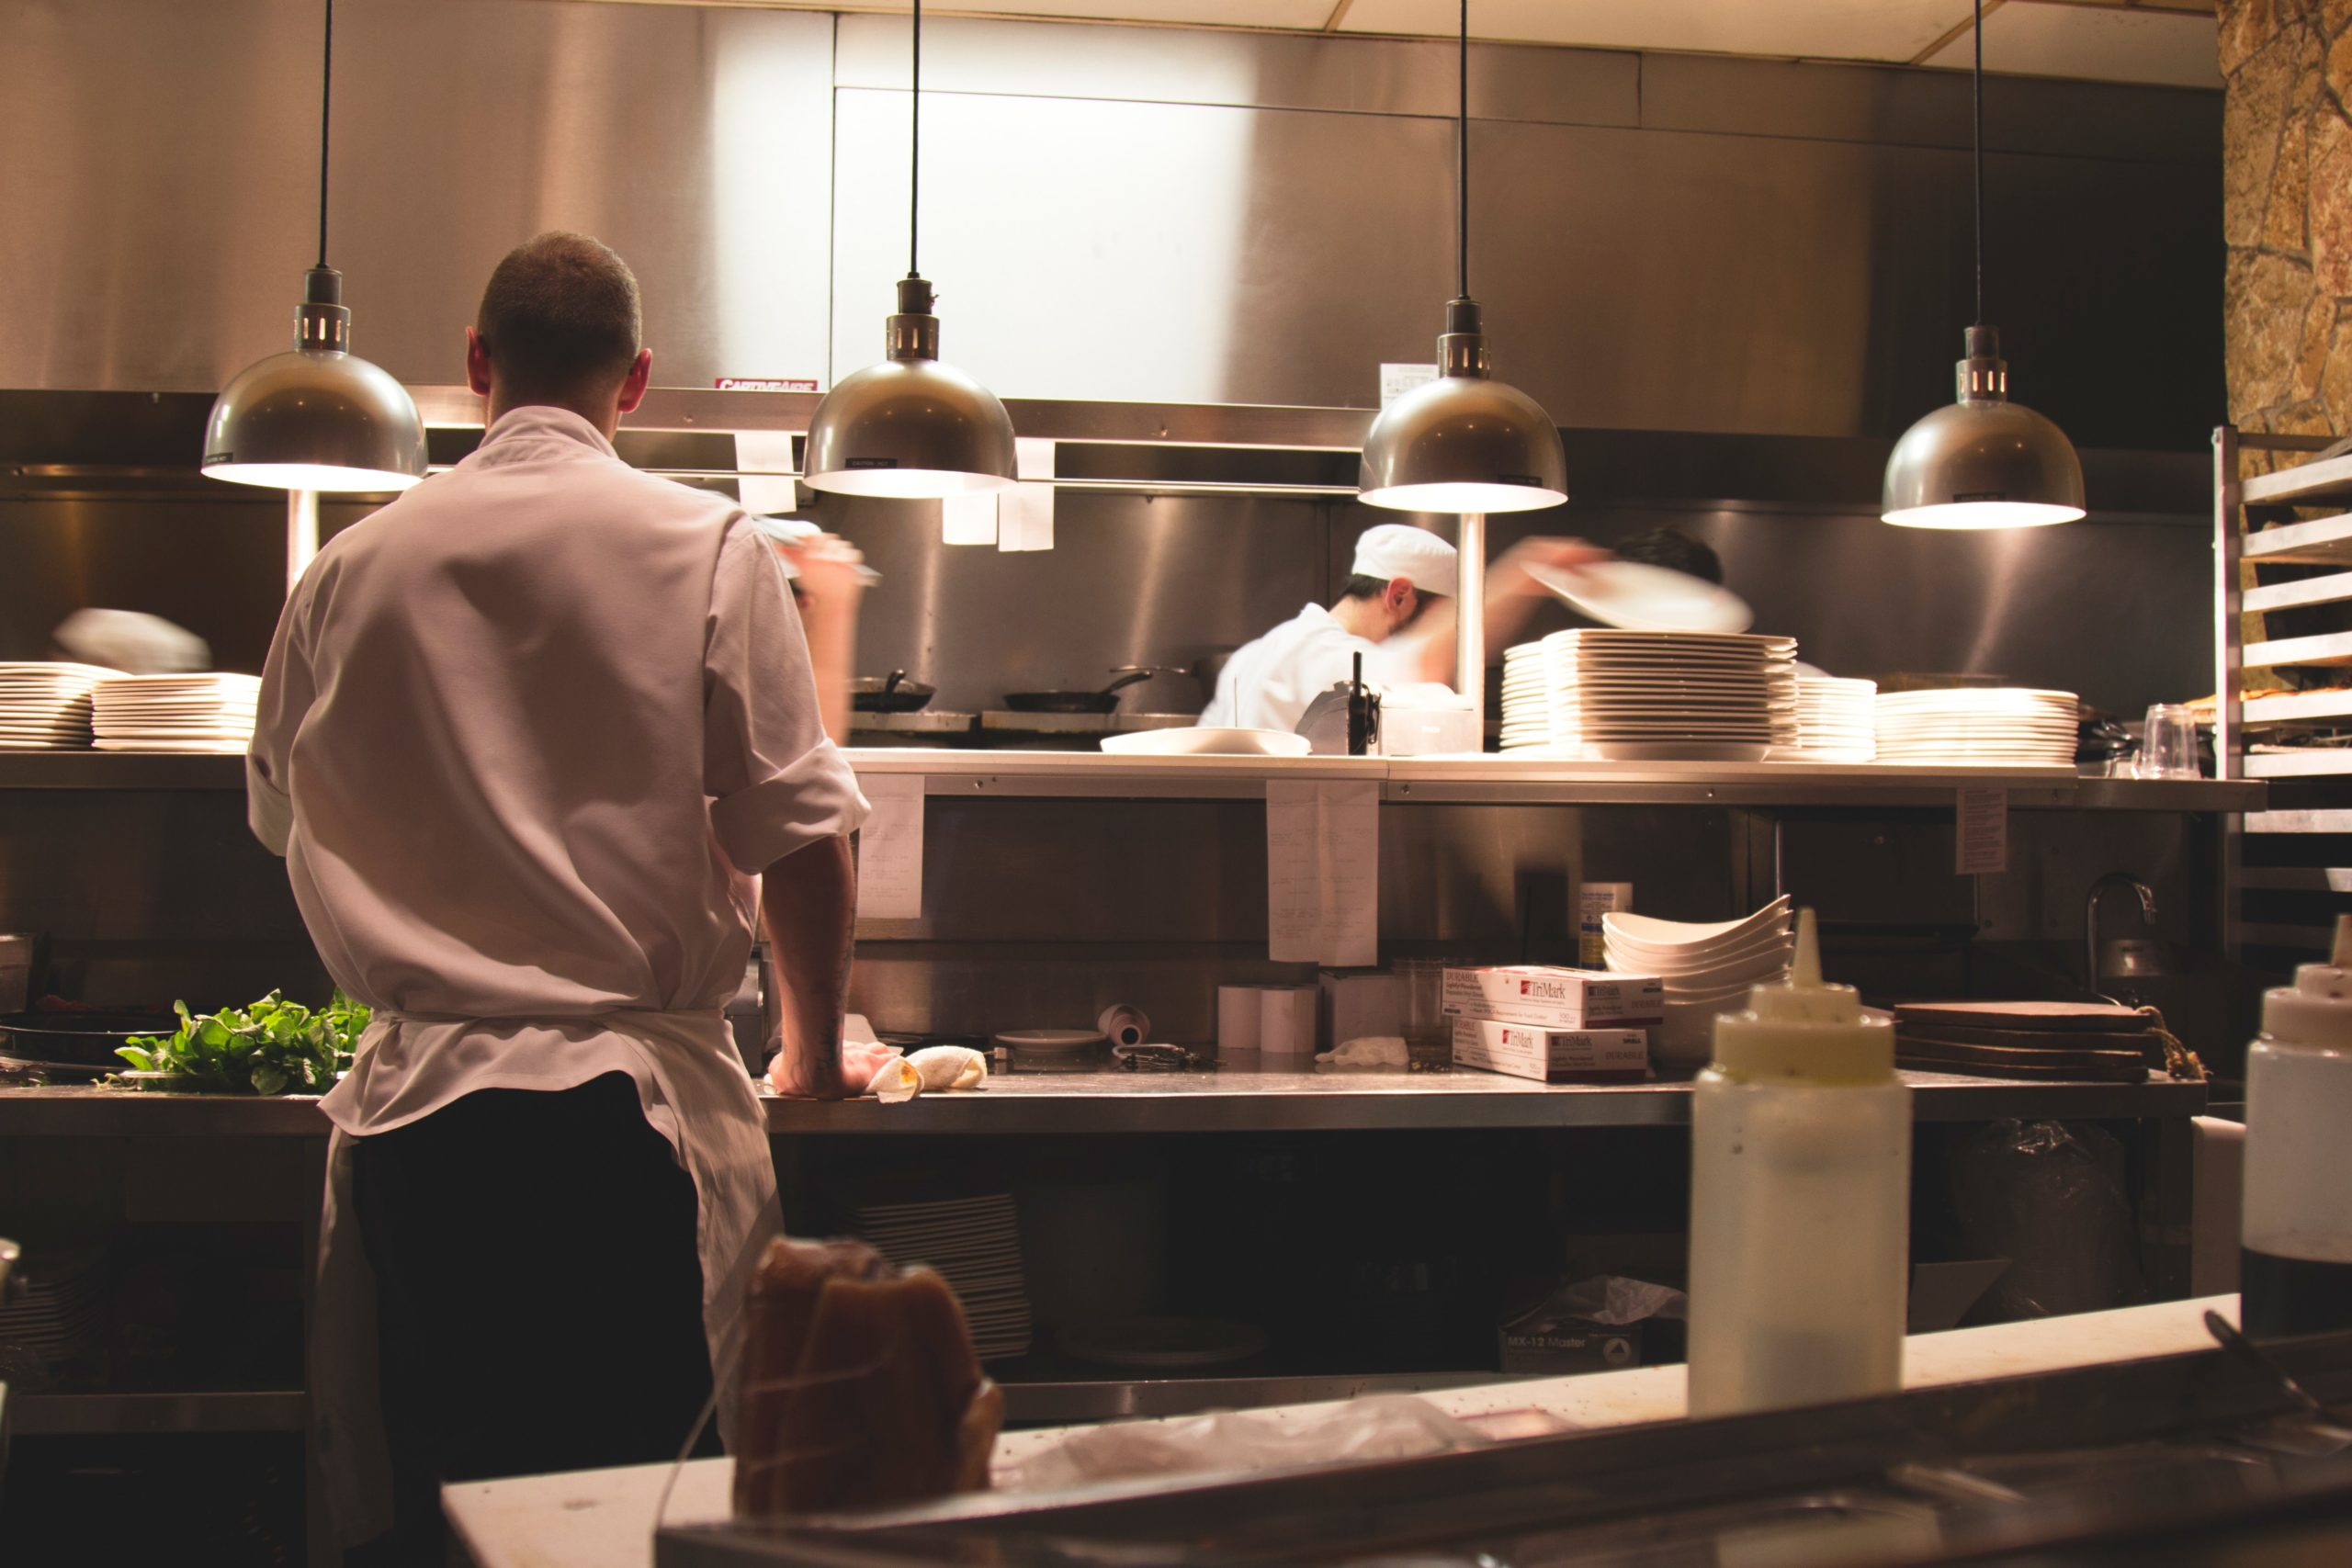 New Chef work permits announcement welcomed by Restaurants Association of Ireland